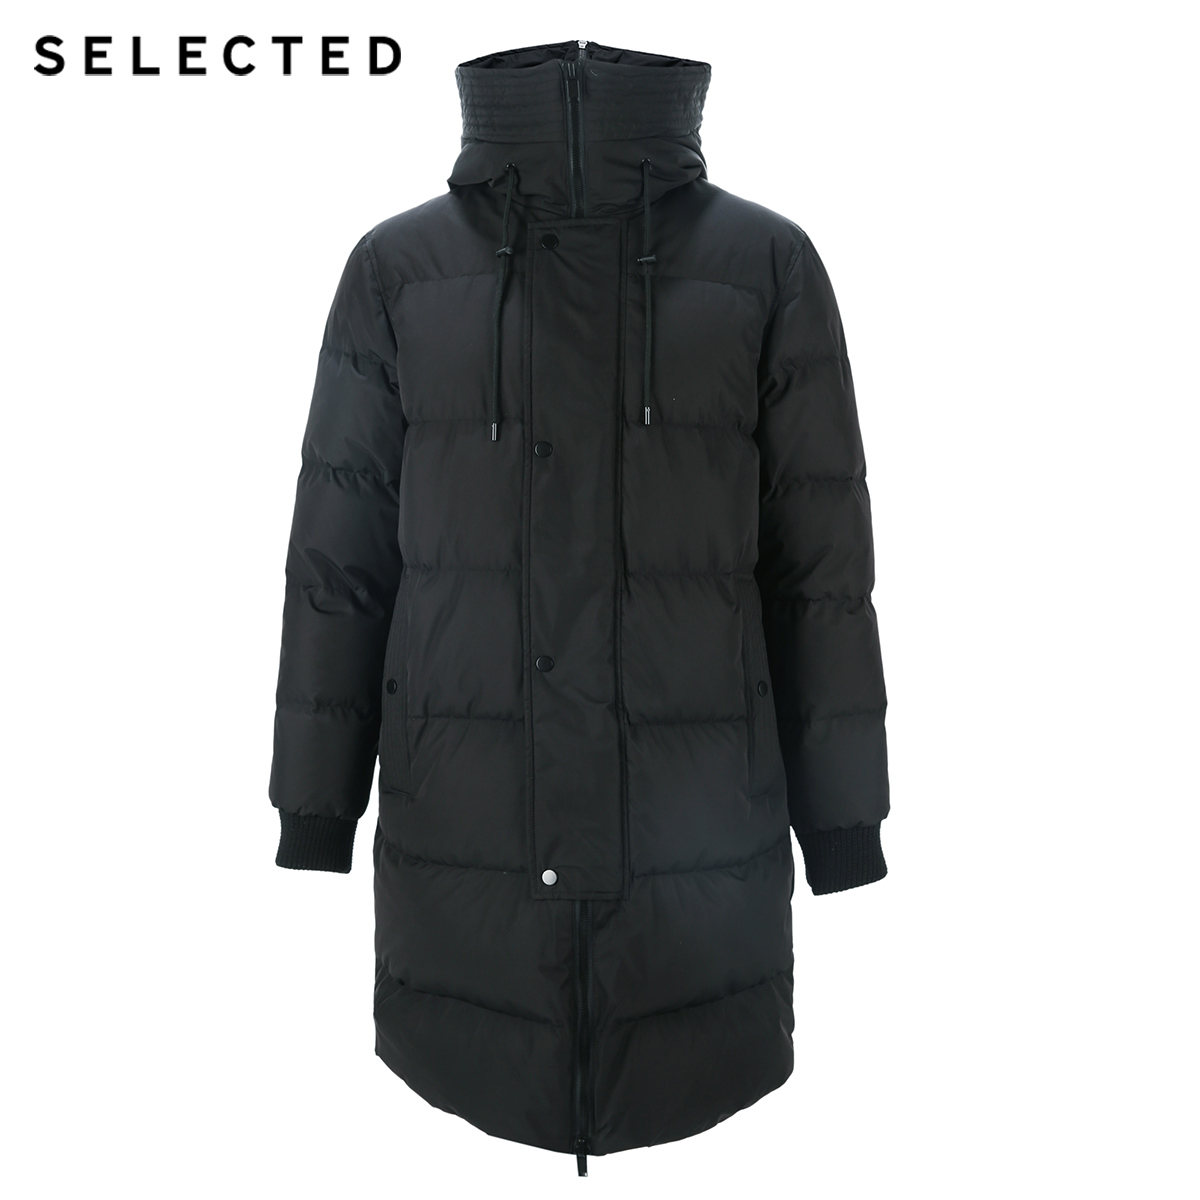 SELECTED 2019 New Winter Down Jacket Men's Zipper and Hat Casual Clothes Medium-and-Long Coat  S | 418412503